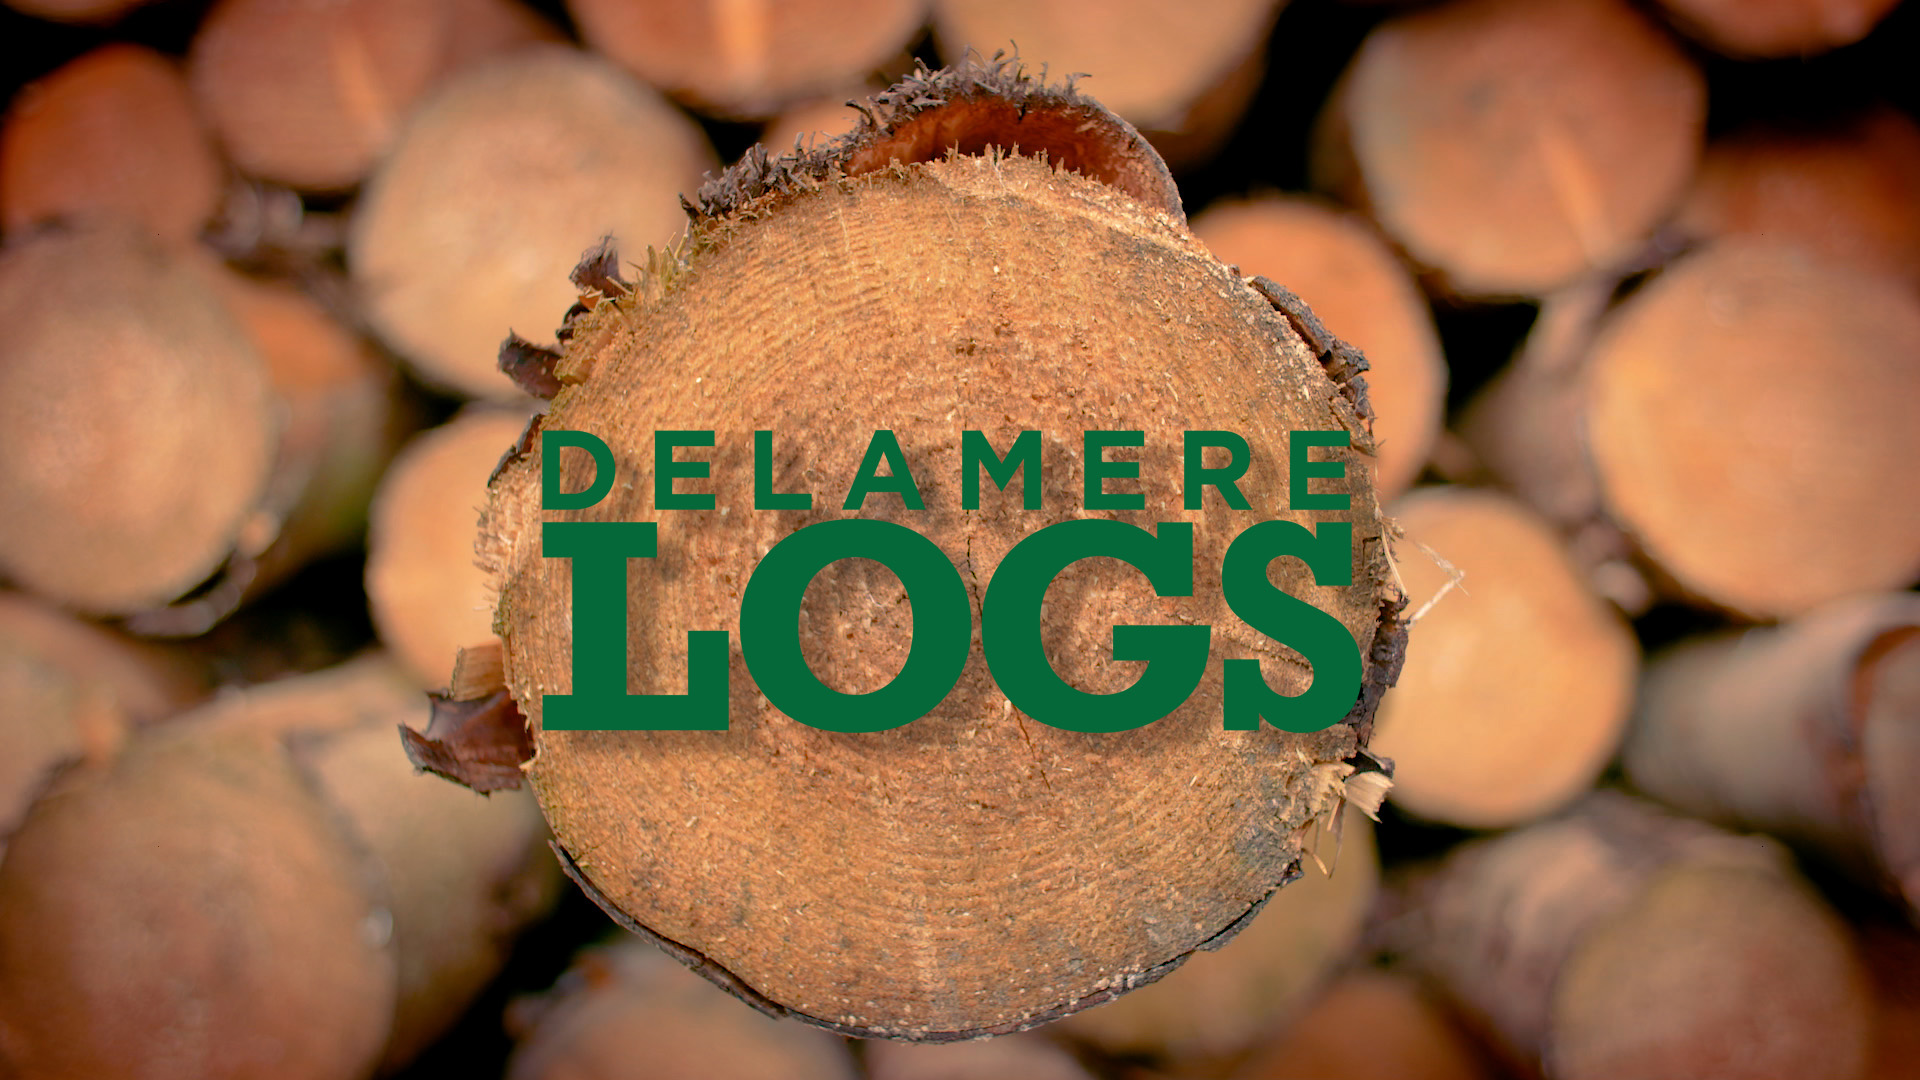 A video for Delamere Logs